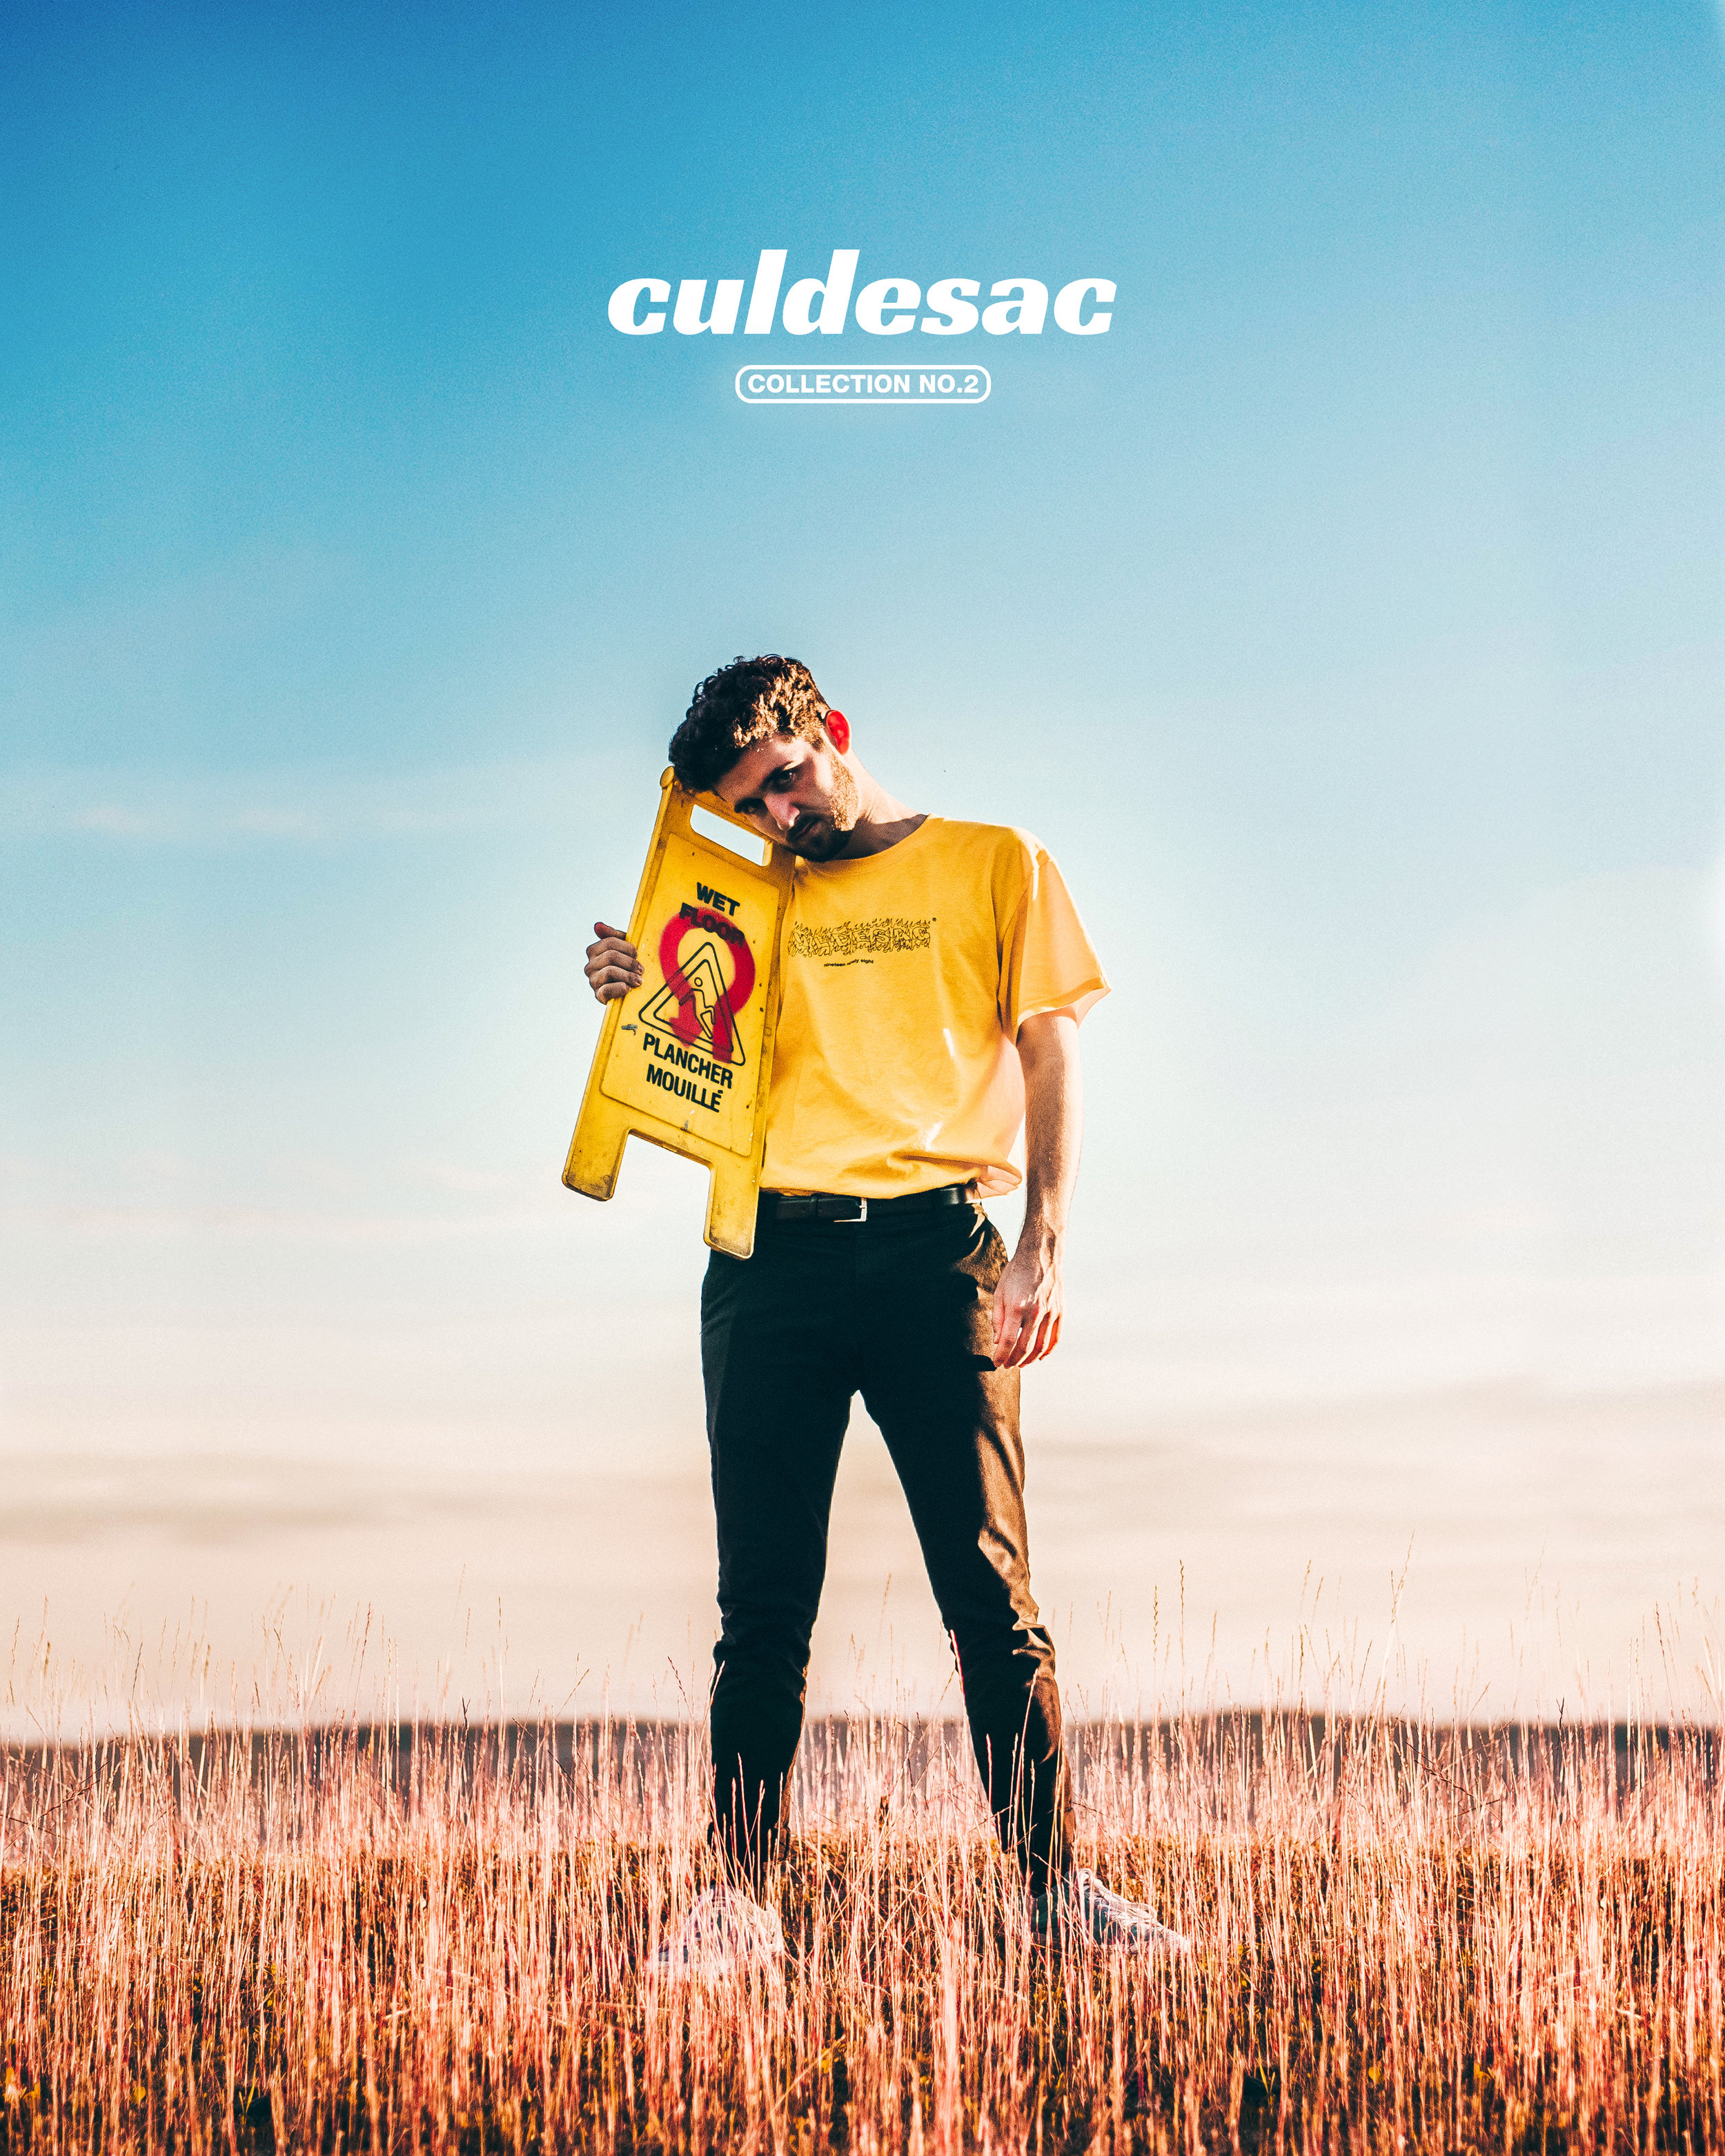 culdesac lookbook cover.jpg